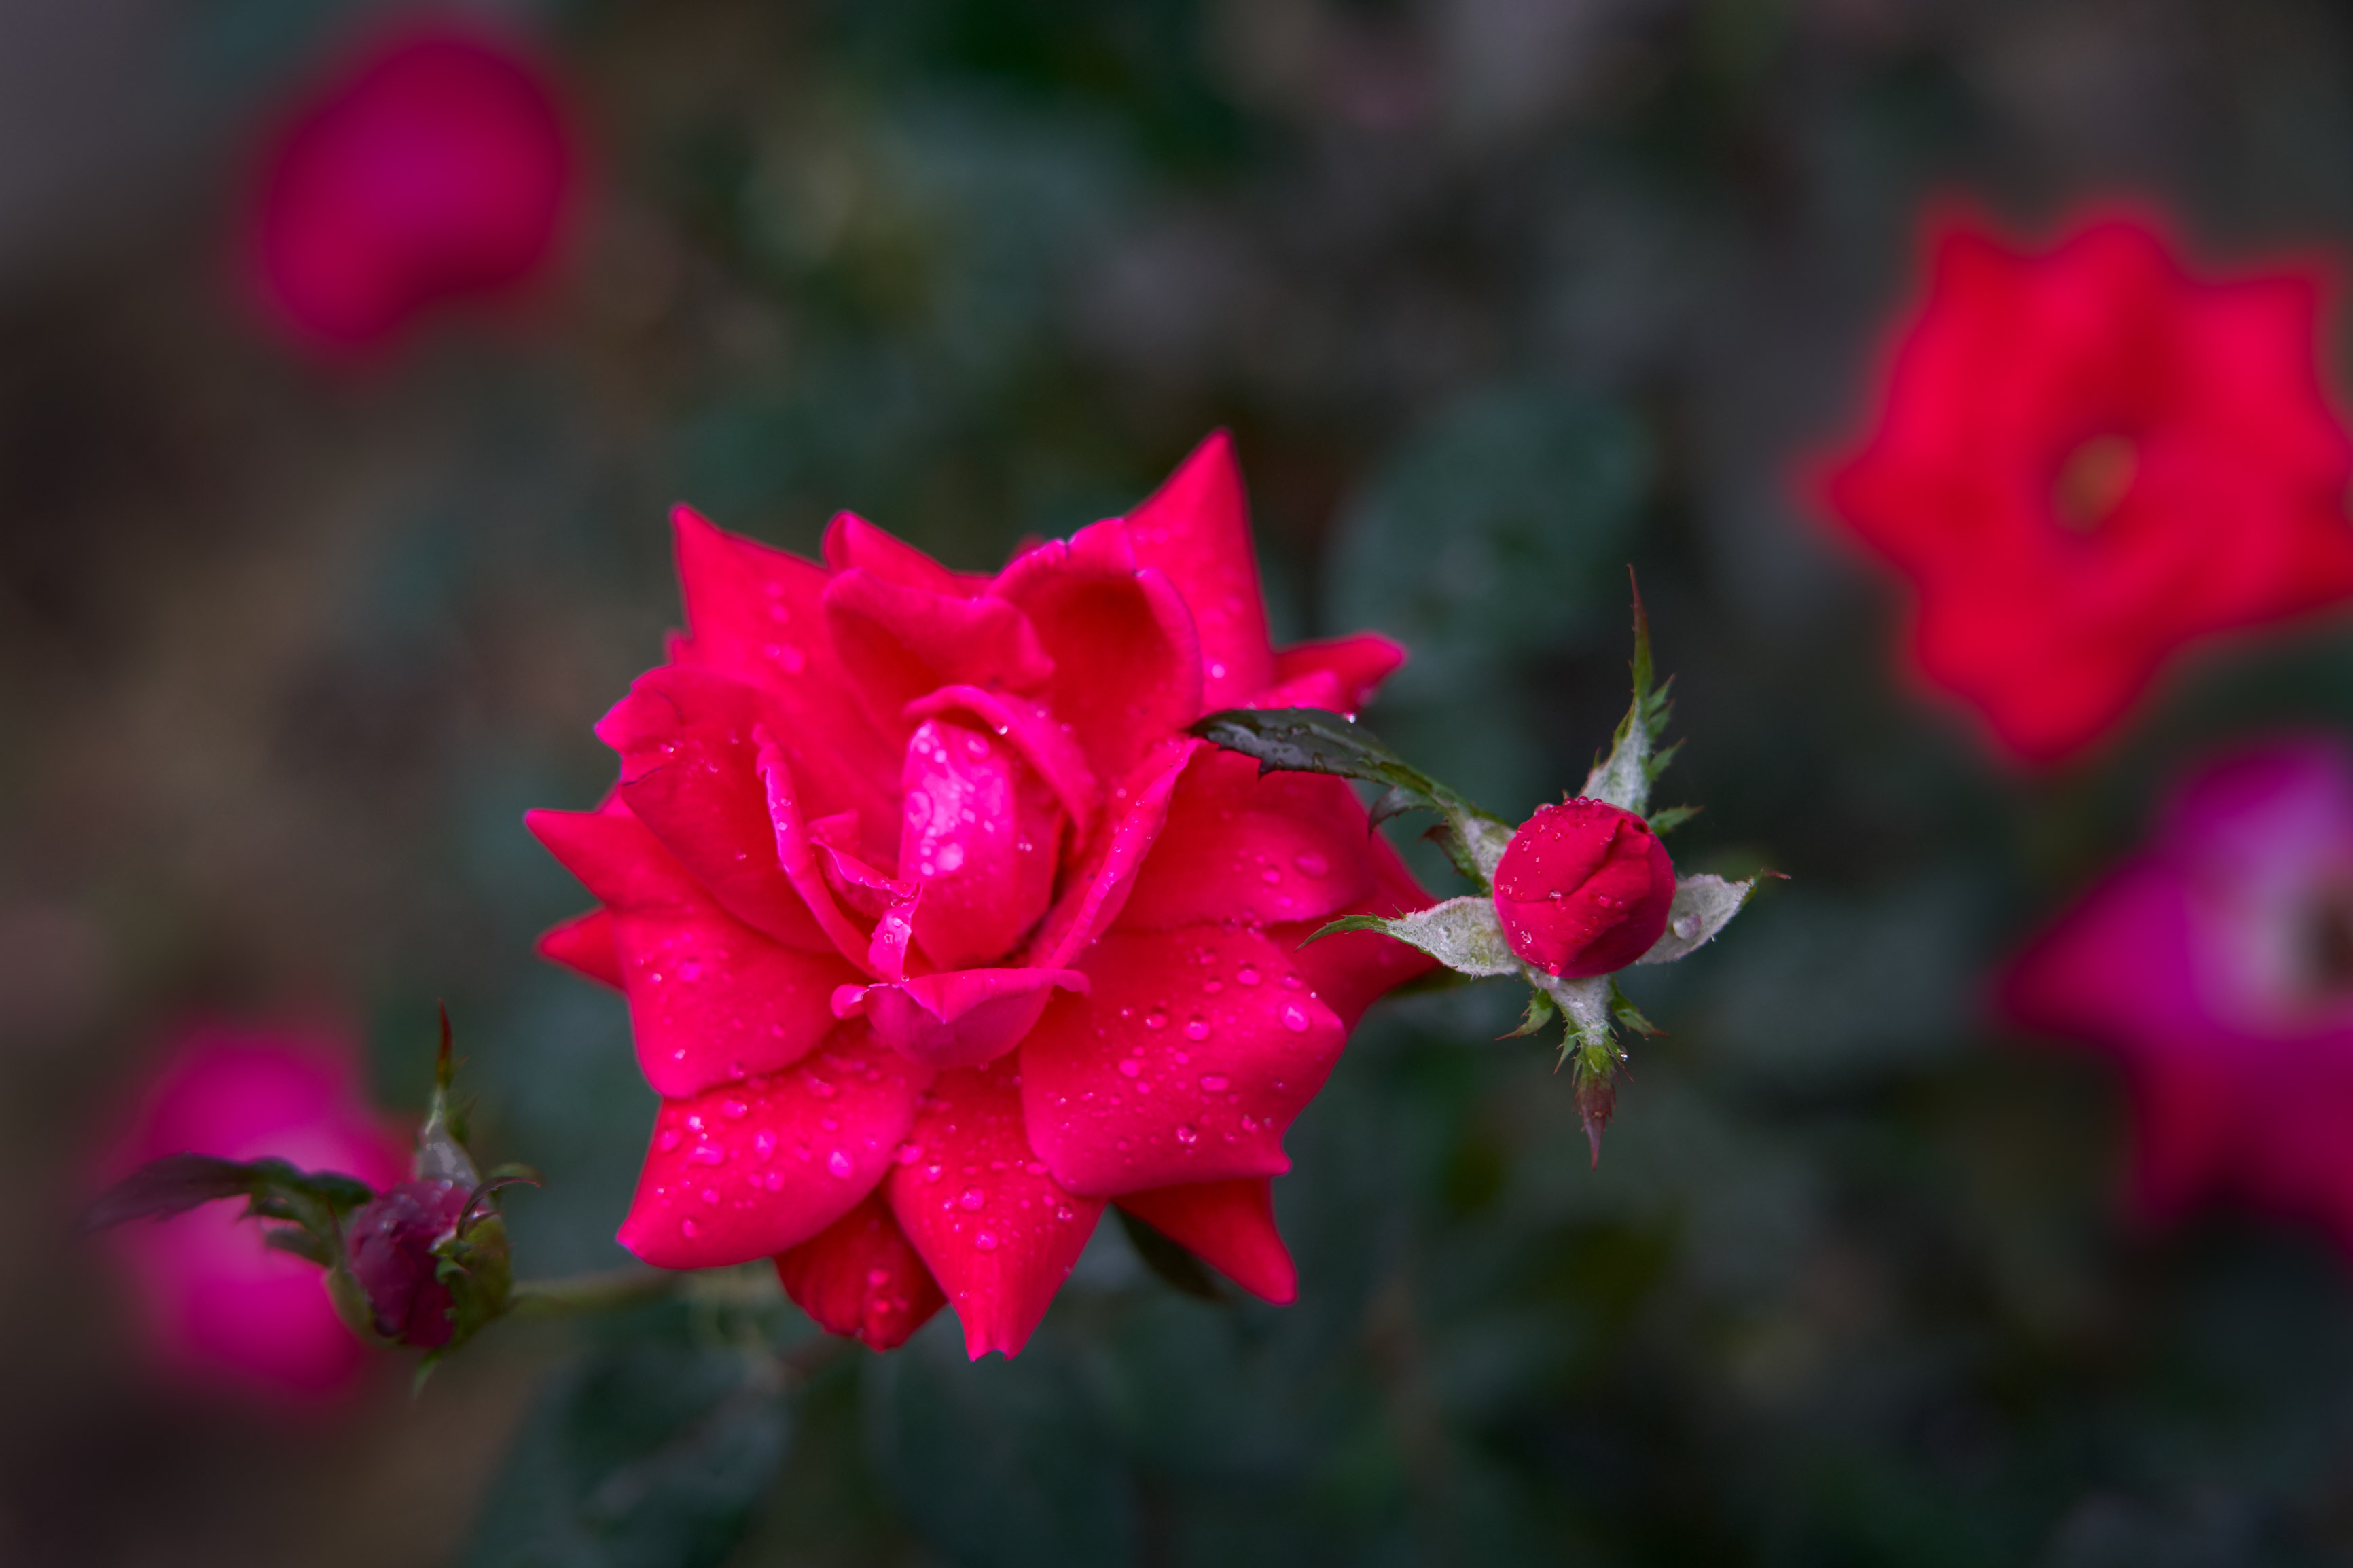 rose bud and full bloom flower.JPG